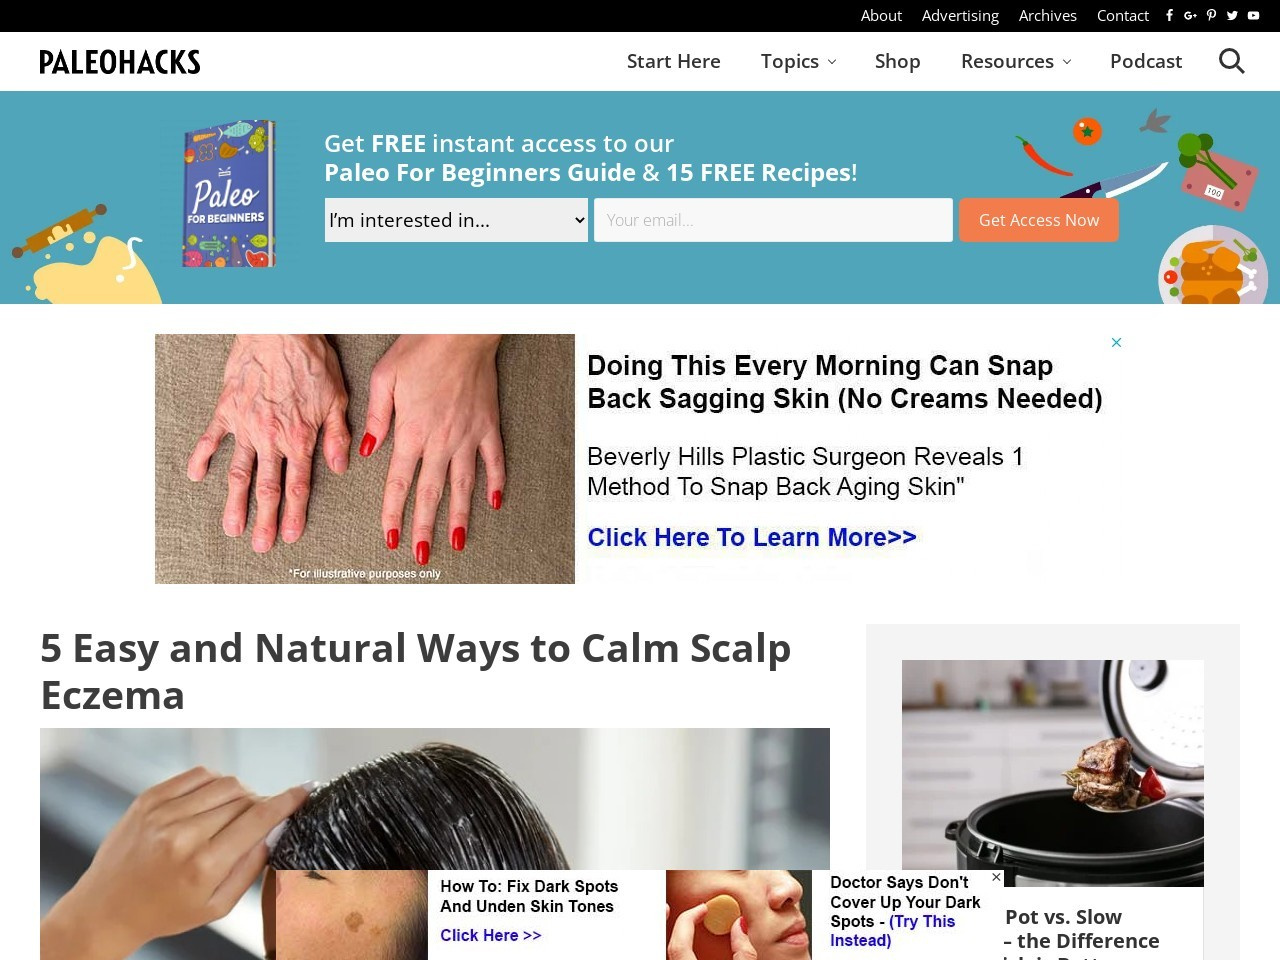 5 Easy and Natural Ways to Calm Scalp Eczema